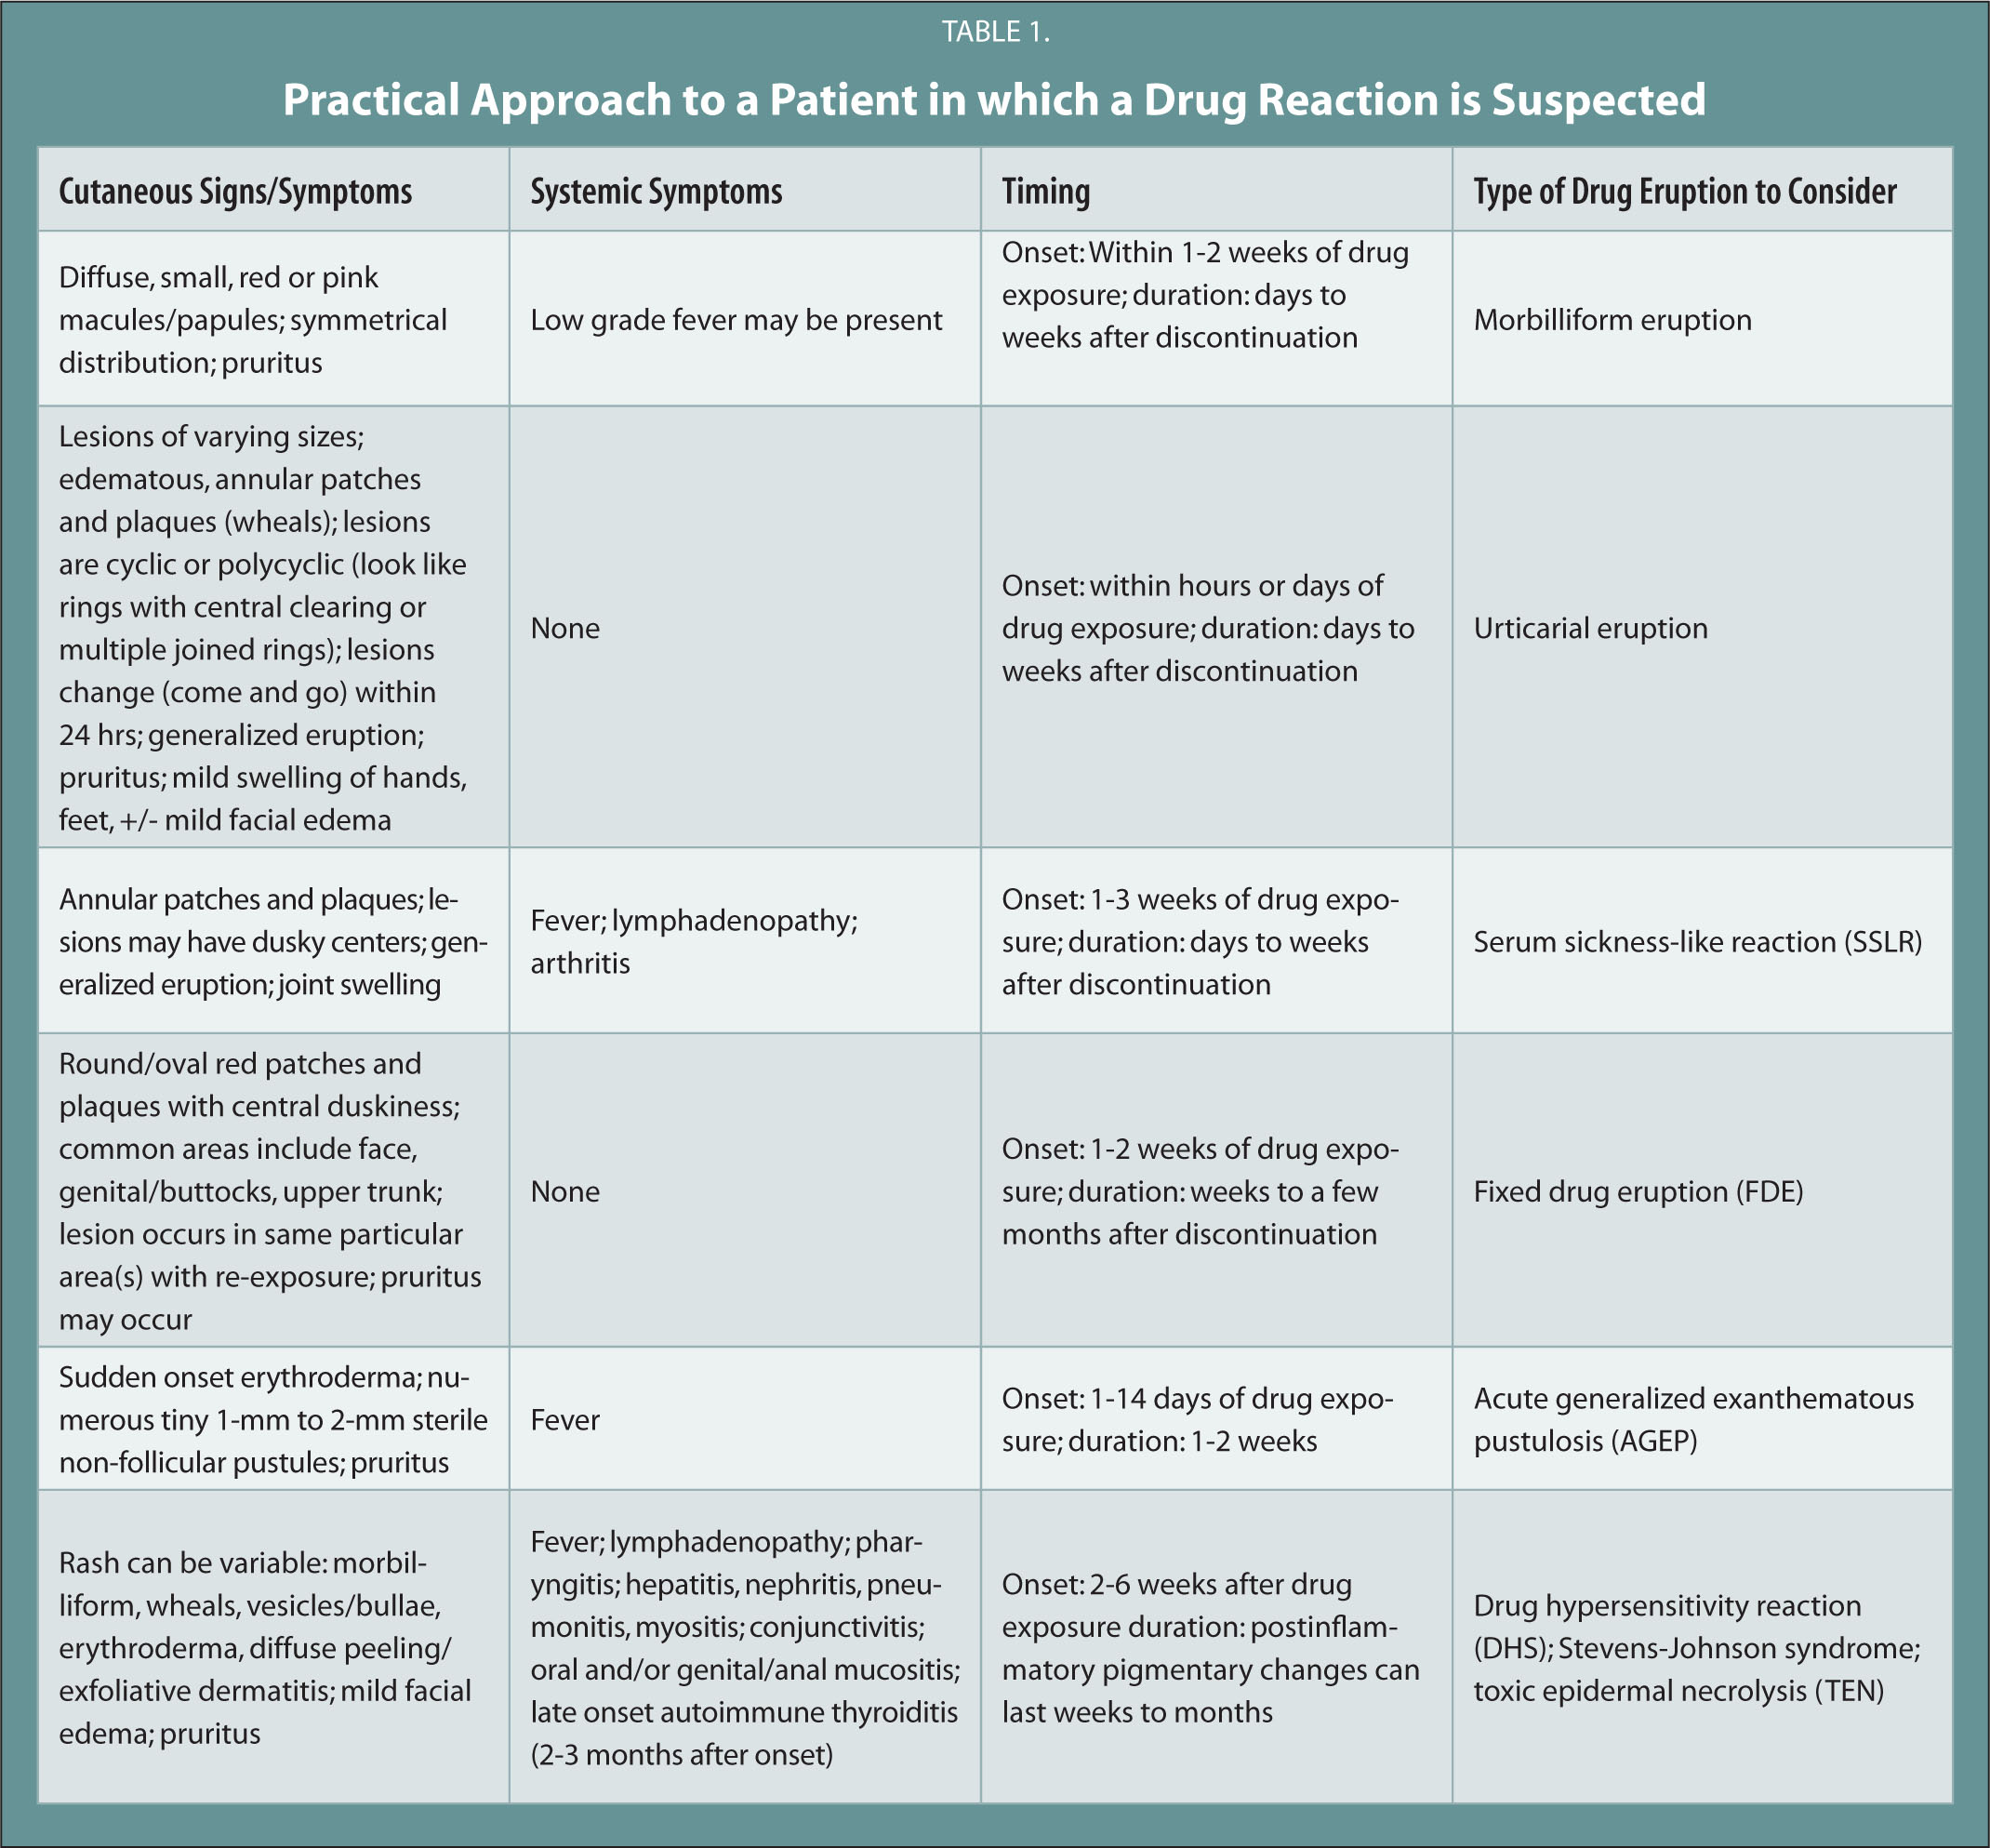 Practical Approach to a Patient in Which a Drug Reaction Is Suspected